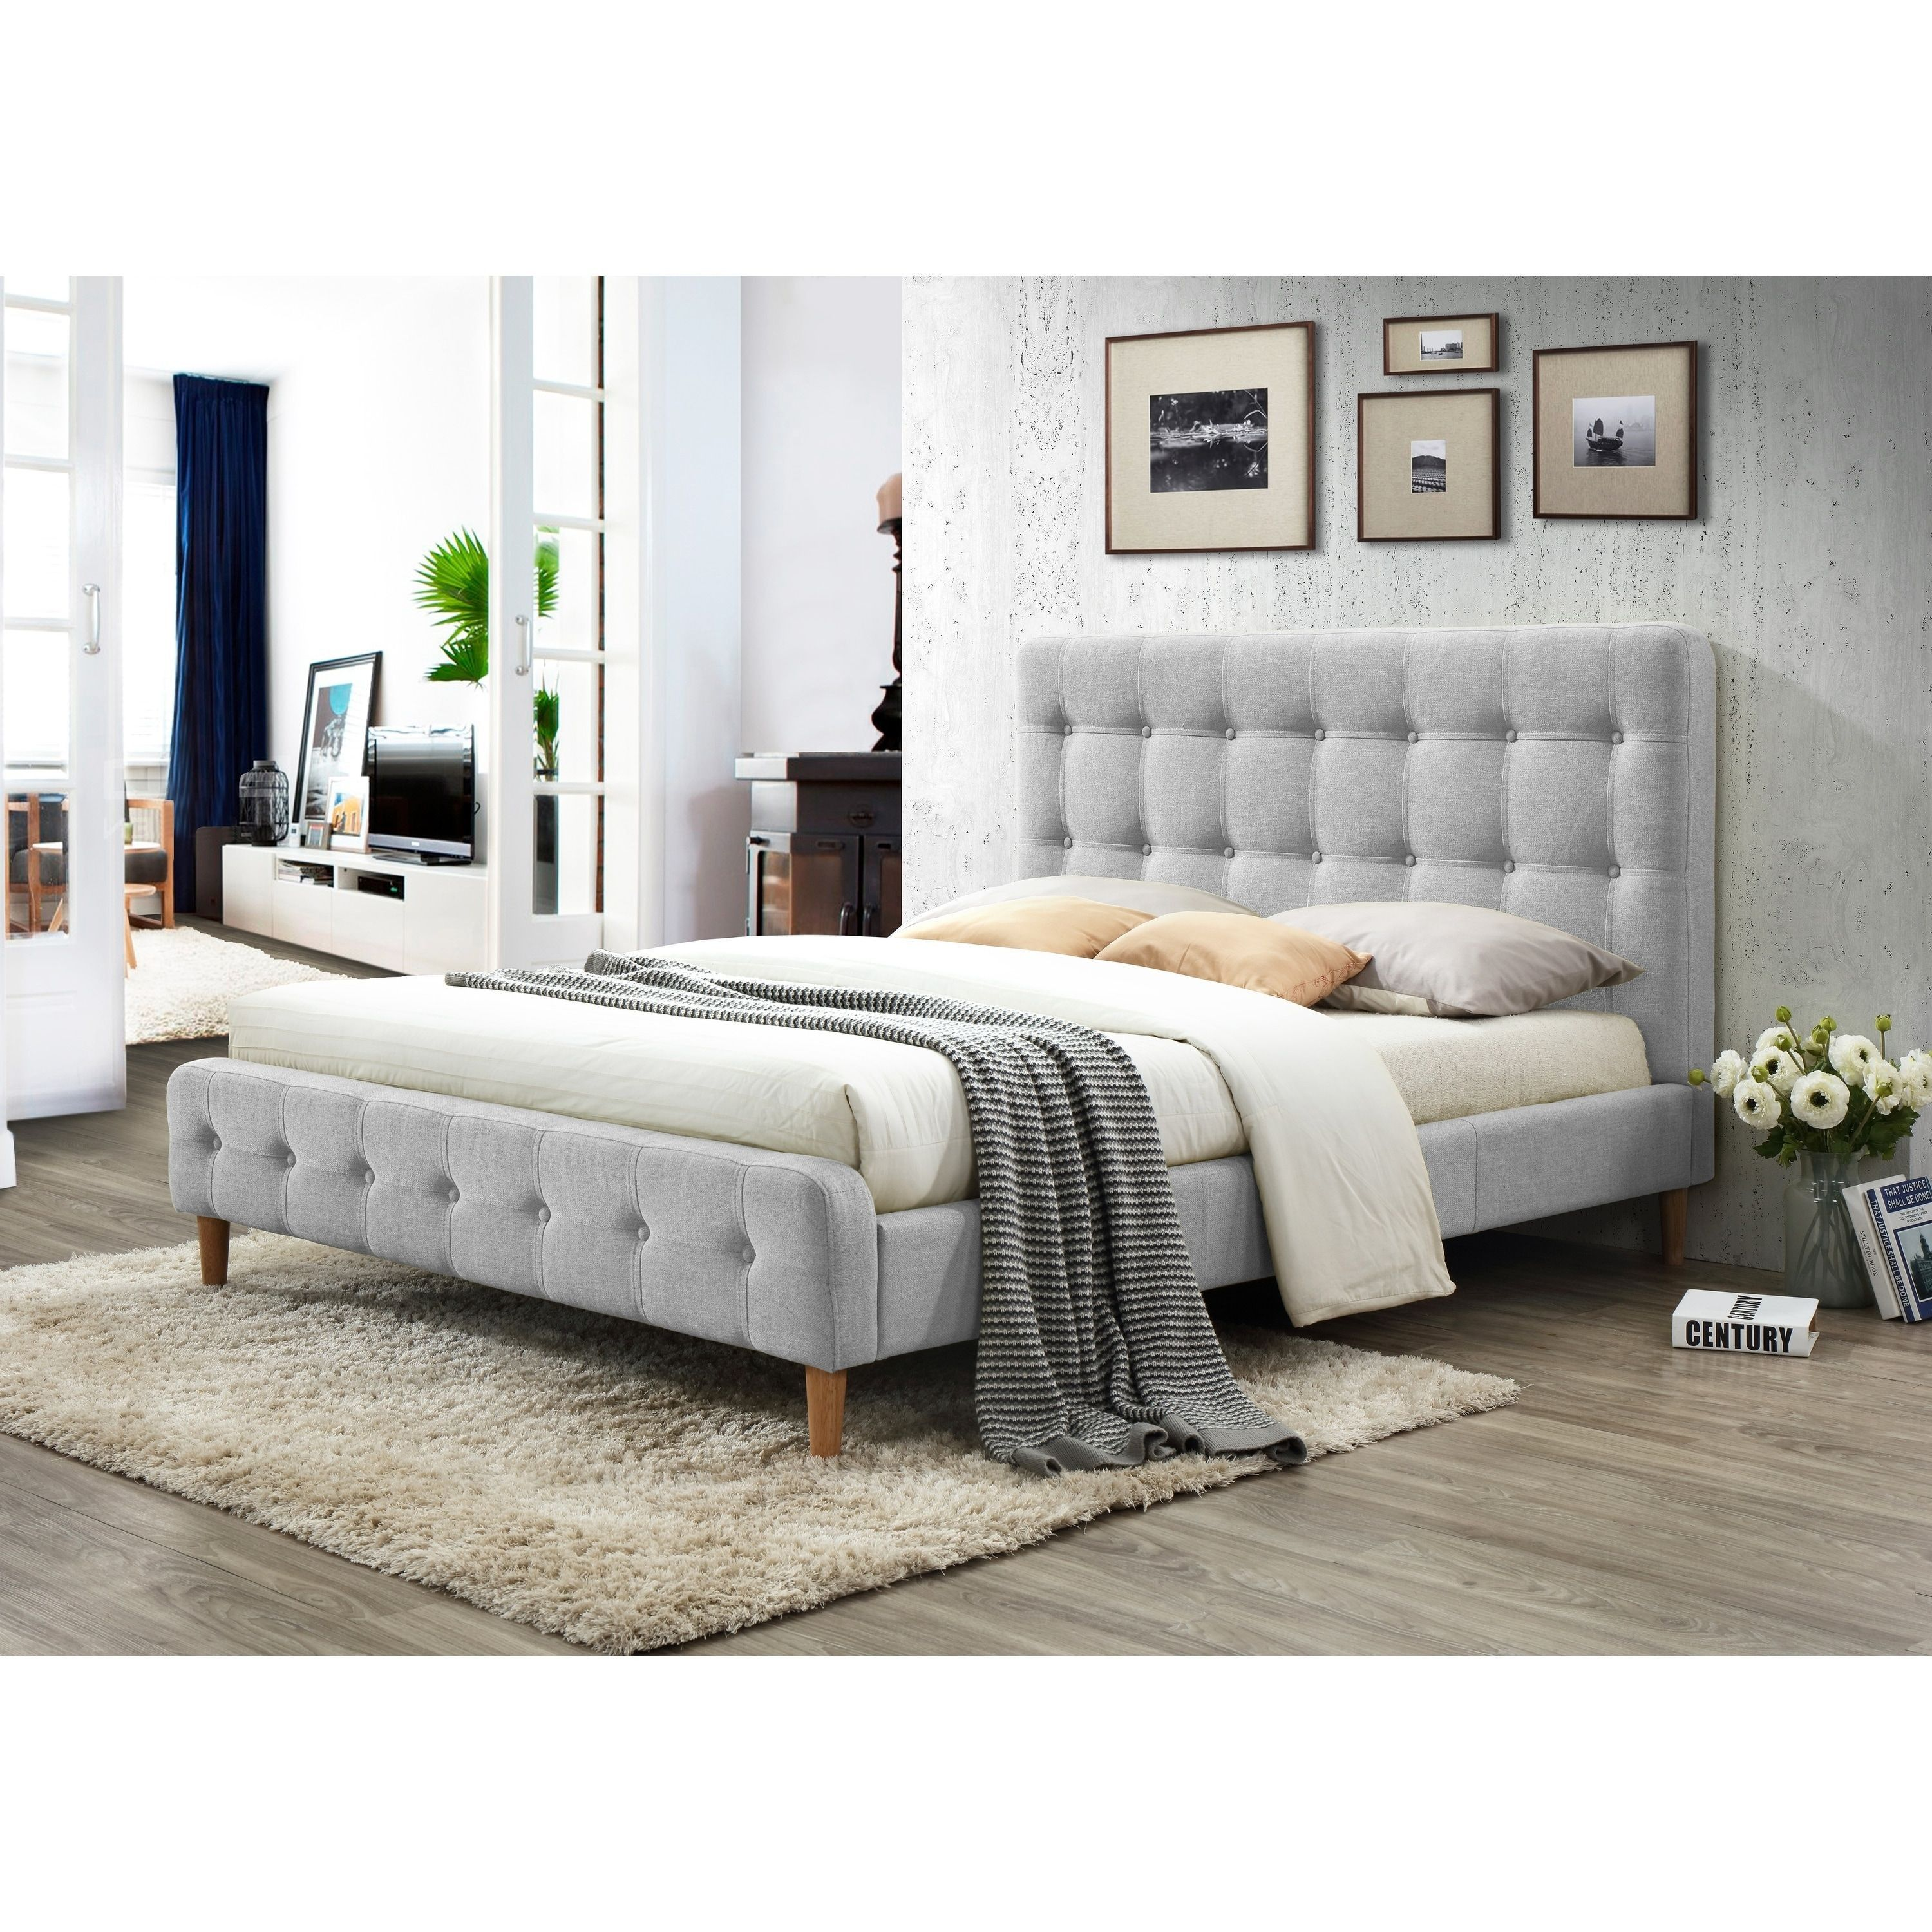 30 Amazing Overstock Queen Bed Frame Which Popular This Year